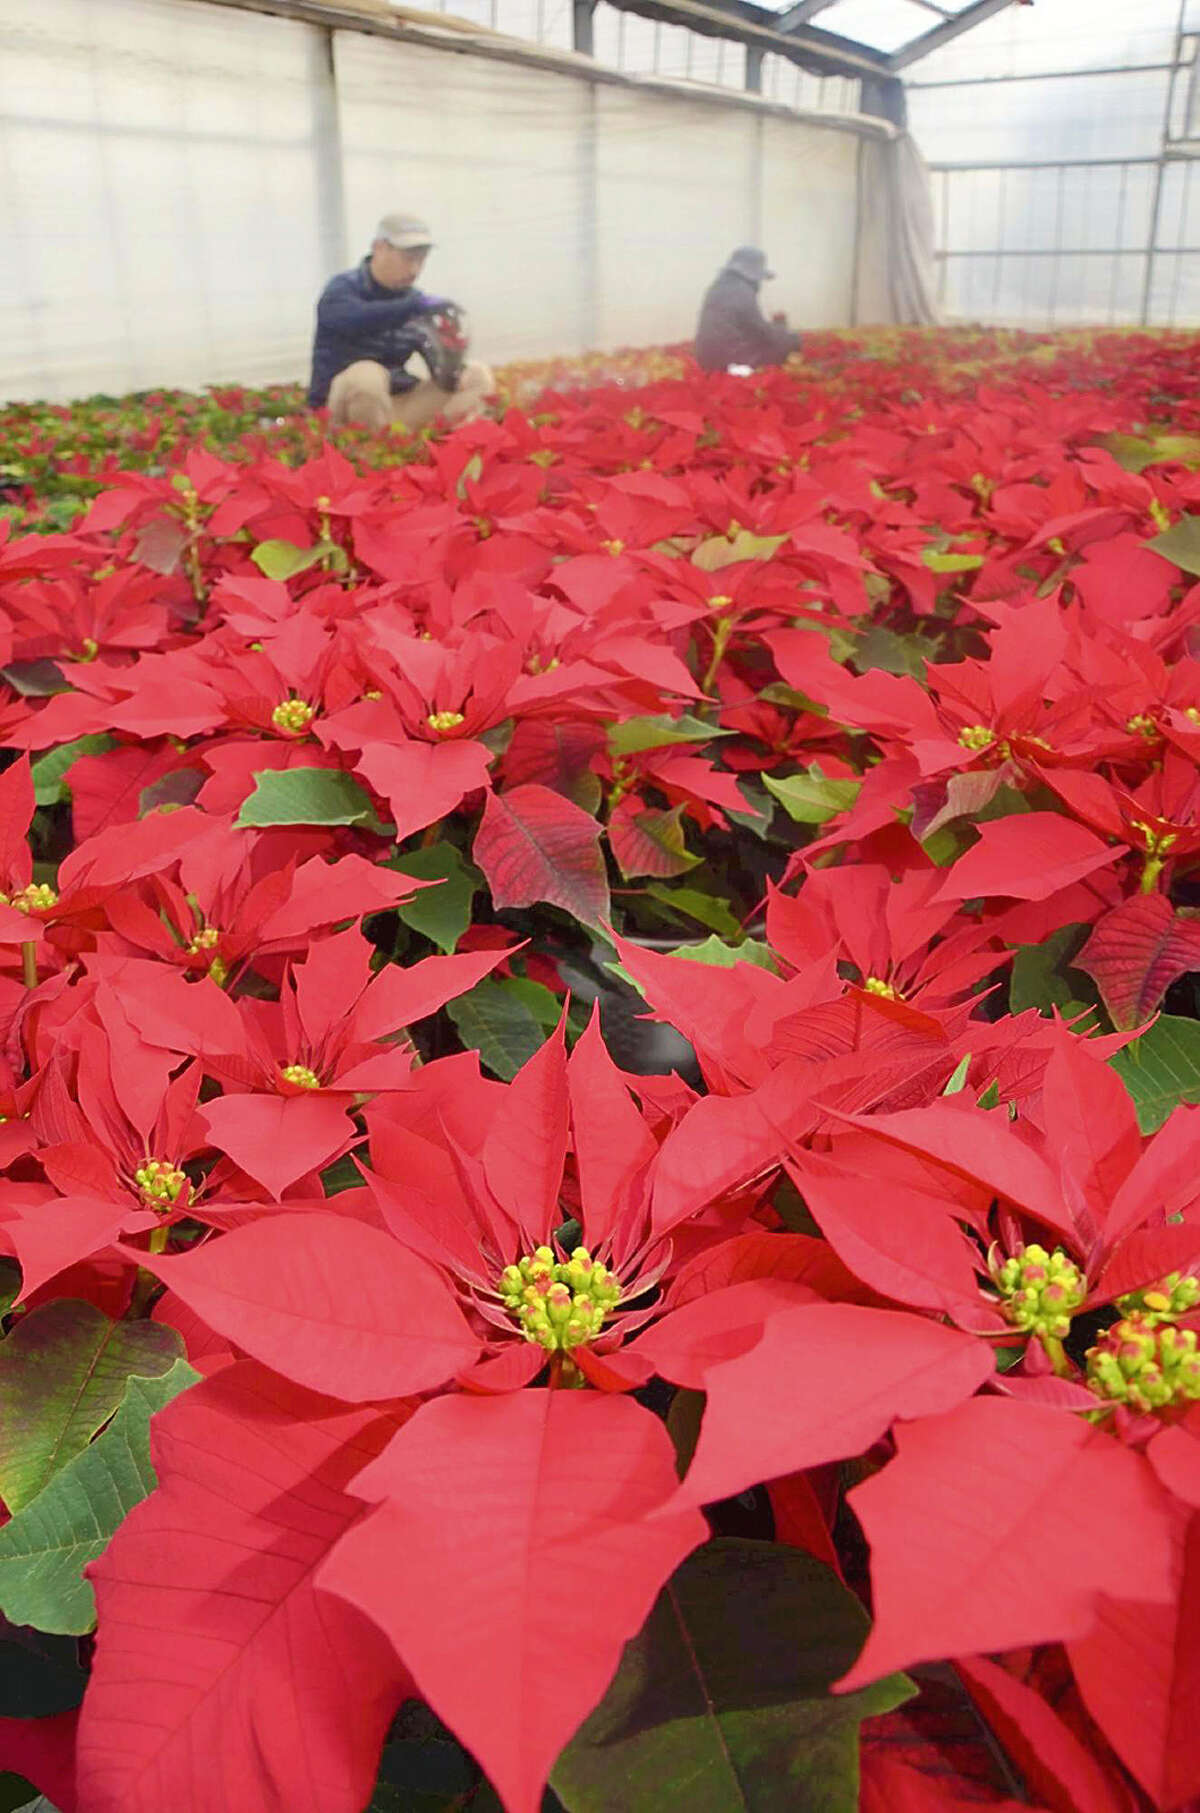 Poinsettias fill a greenhouse at Kawate Noen farm in Edogawa Ward, Tokyo, on November 14, 2017. The farm has started shipments for the Christmas season and expects the peak to be around November 20. About 5,000 pots are expected to be shipped to the Tokyo metropolitan area. MUST CREDIT: Japan News-Yomiuri